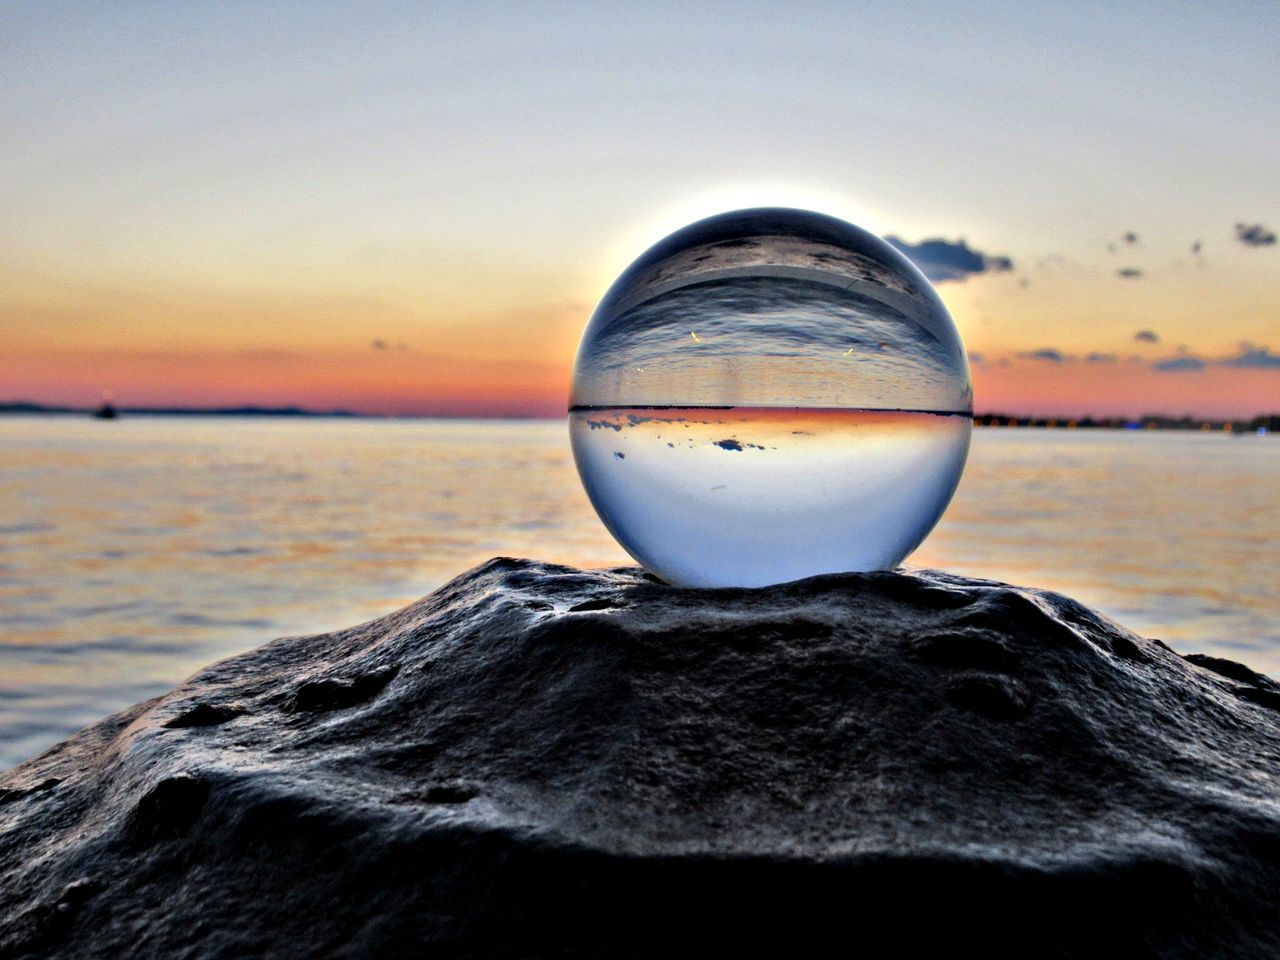 Close-Up Of Crystal Ball Against Sea During Sunset